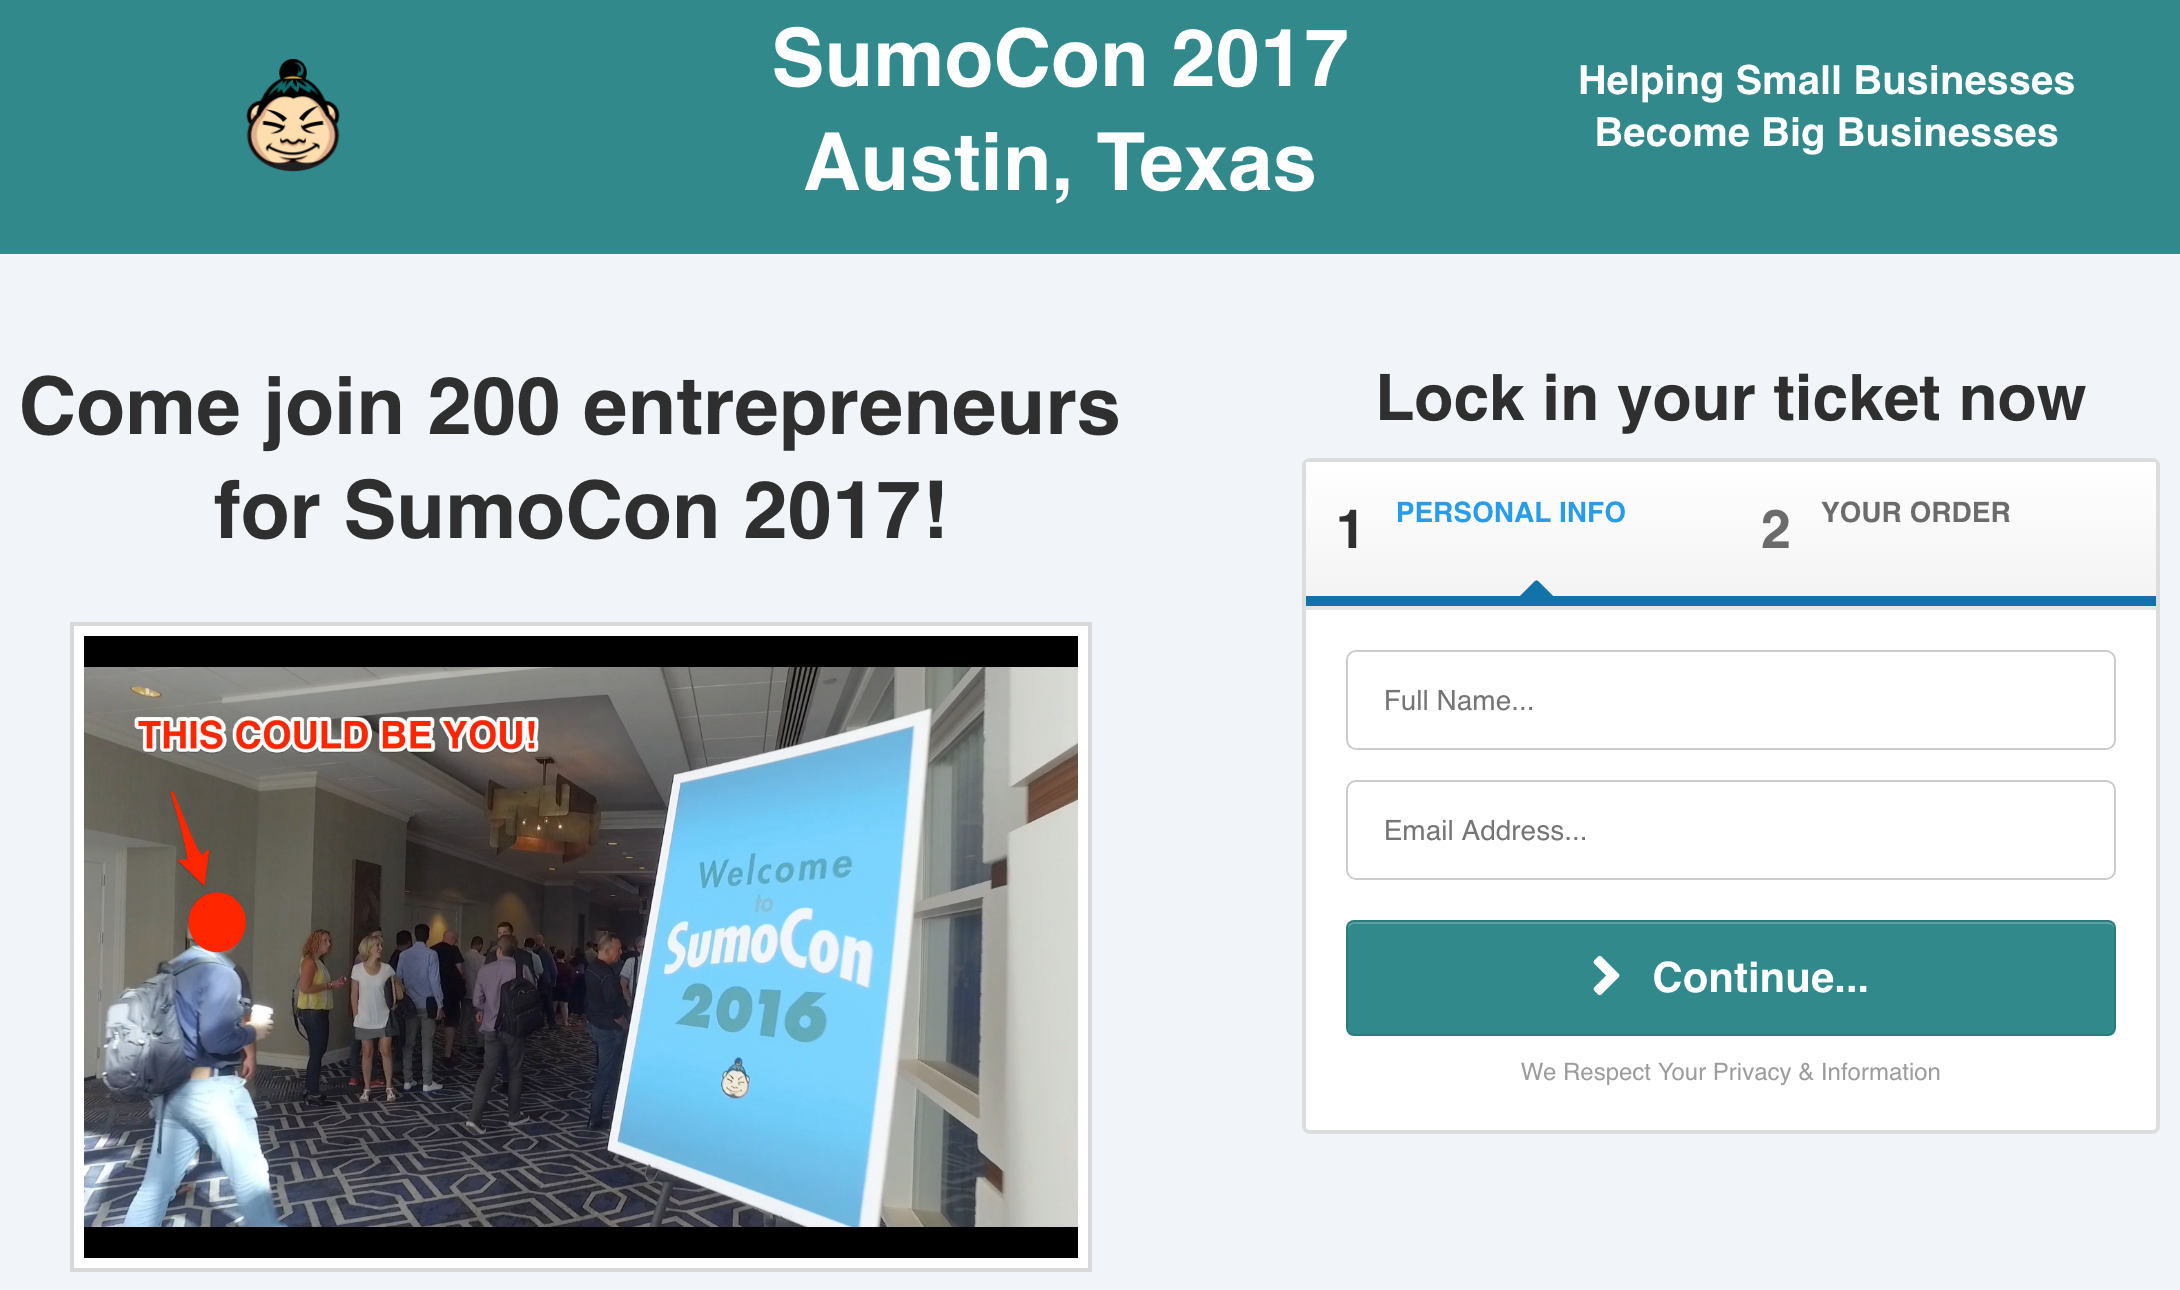 Screenshot showing a landing page for SumoCon 2017